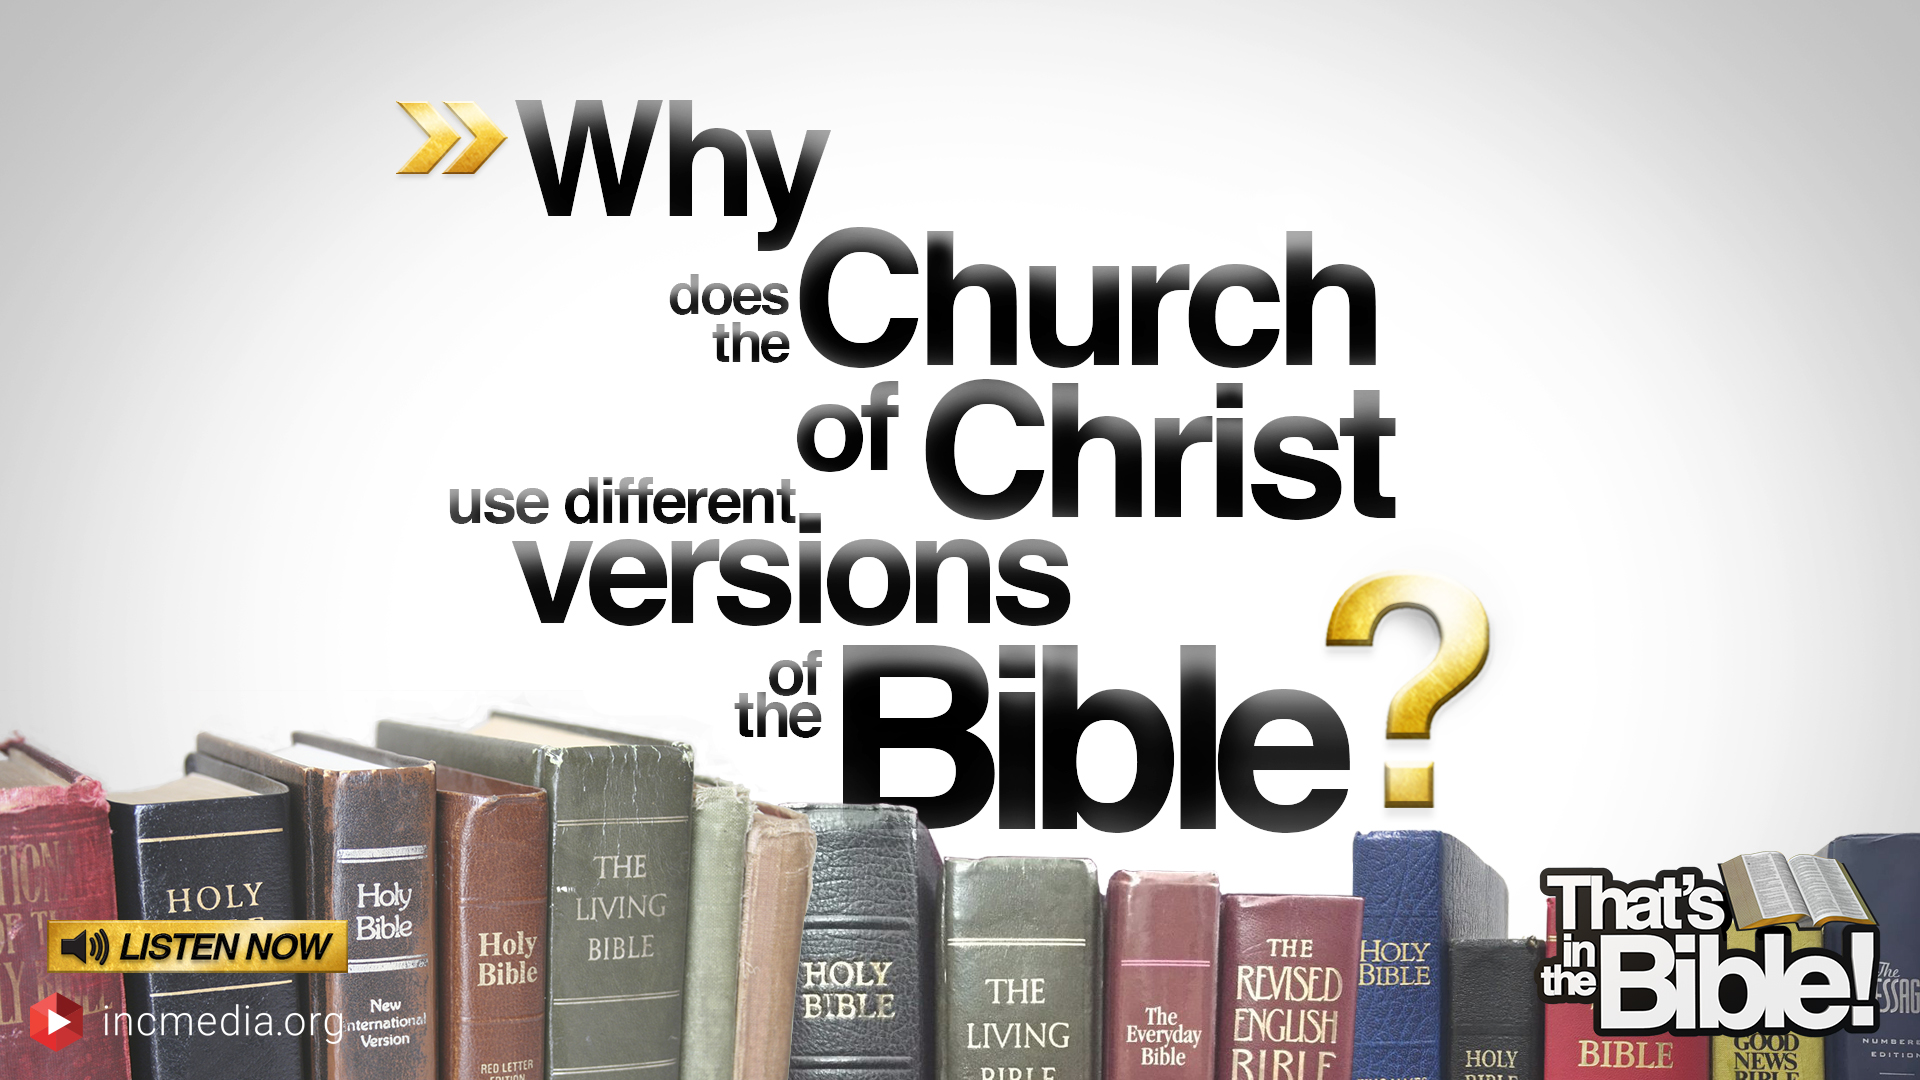 Why Does the Church of Christ Use Different Versions of the Bible?